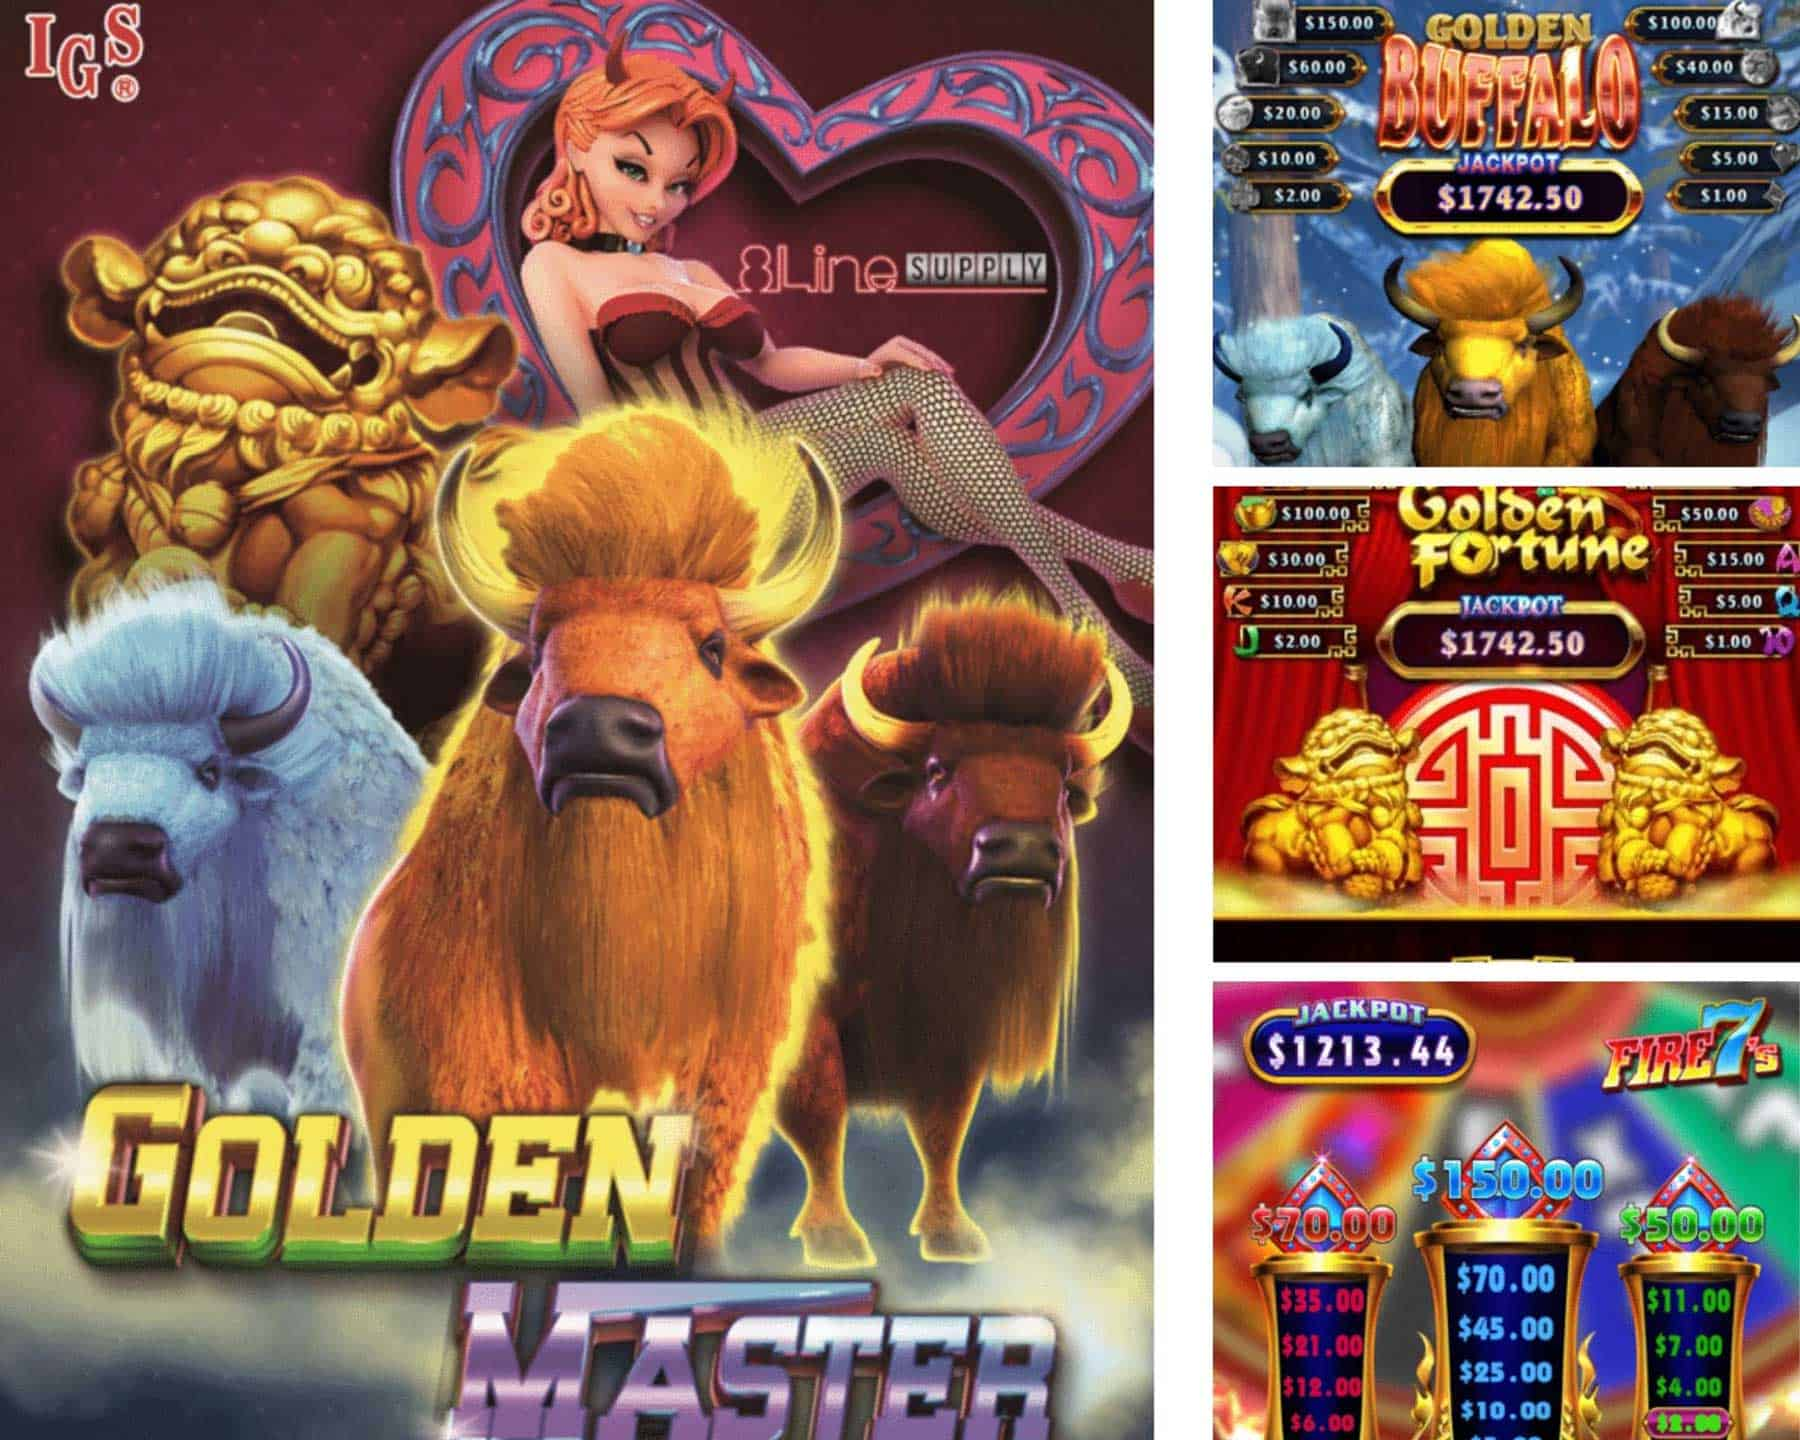 Golden Master by IGS offers three fun vertical skill games